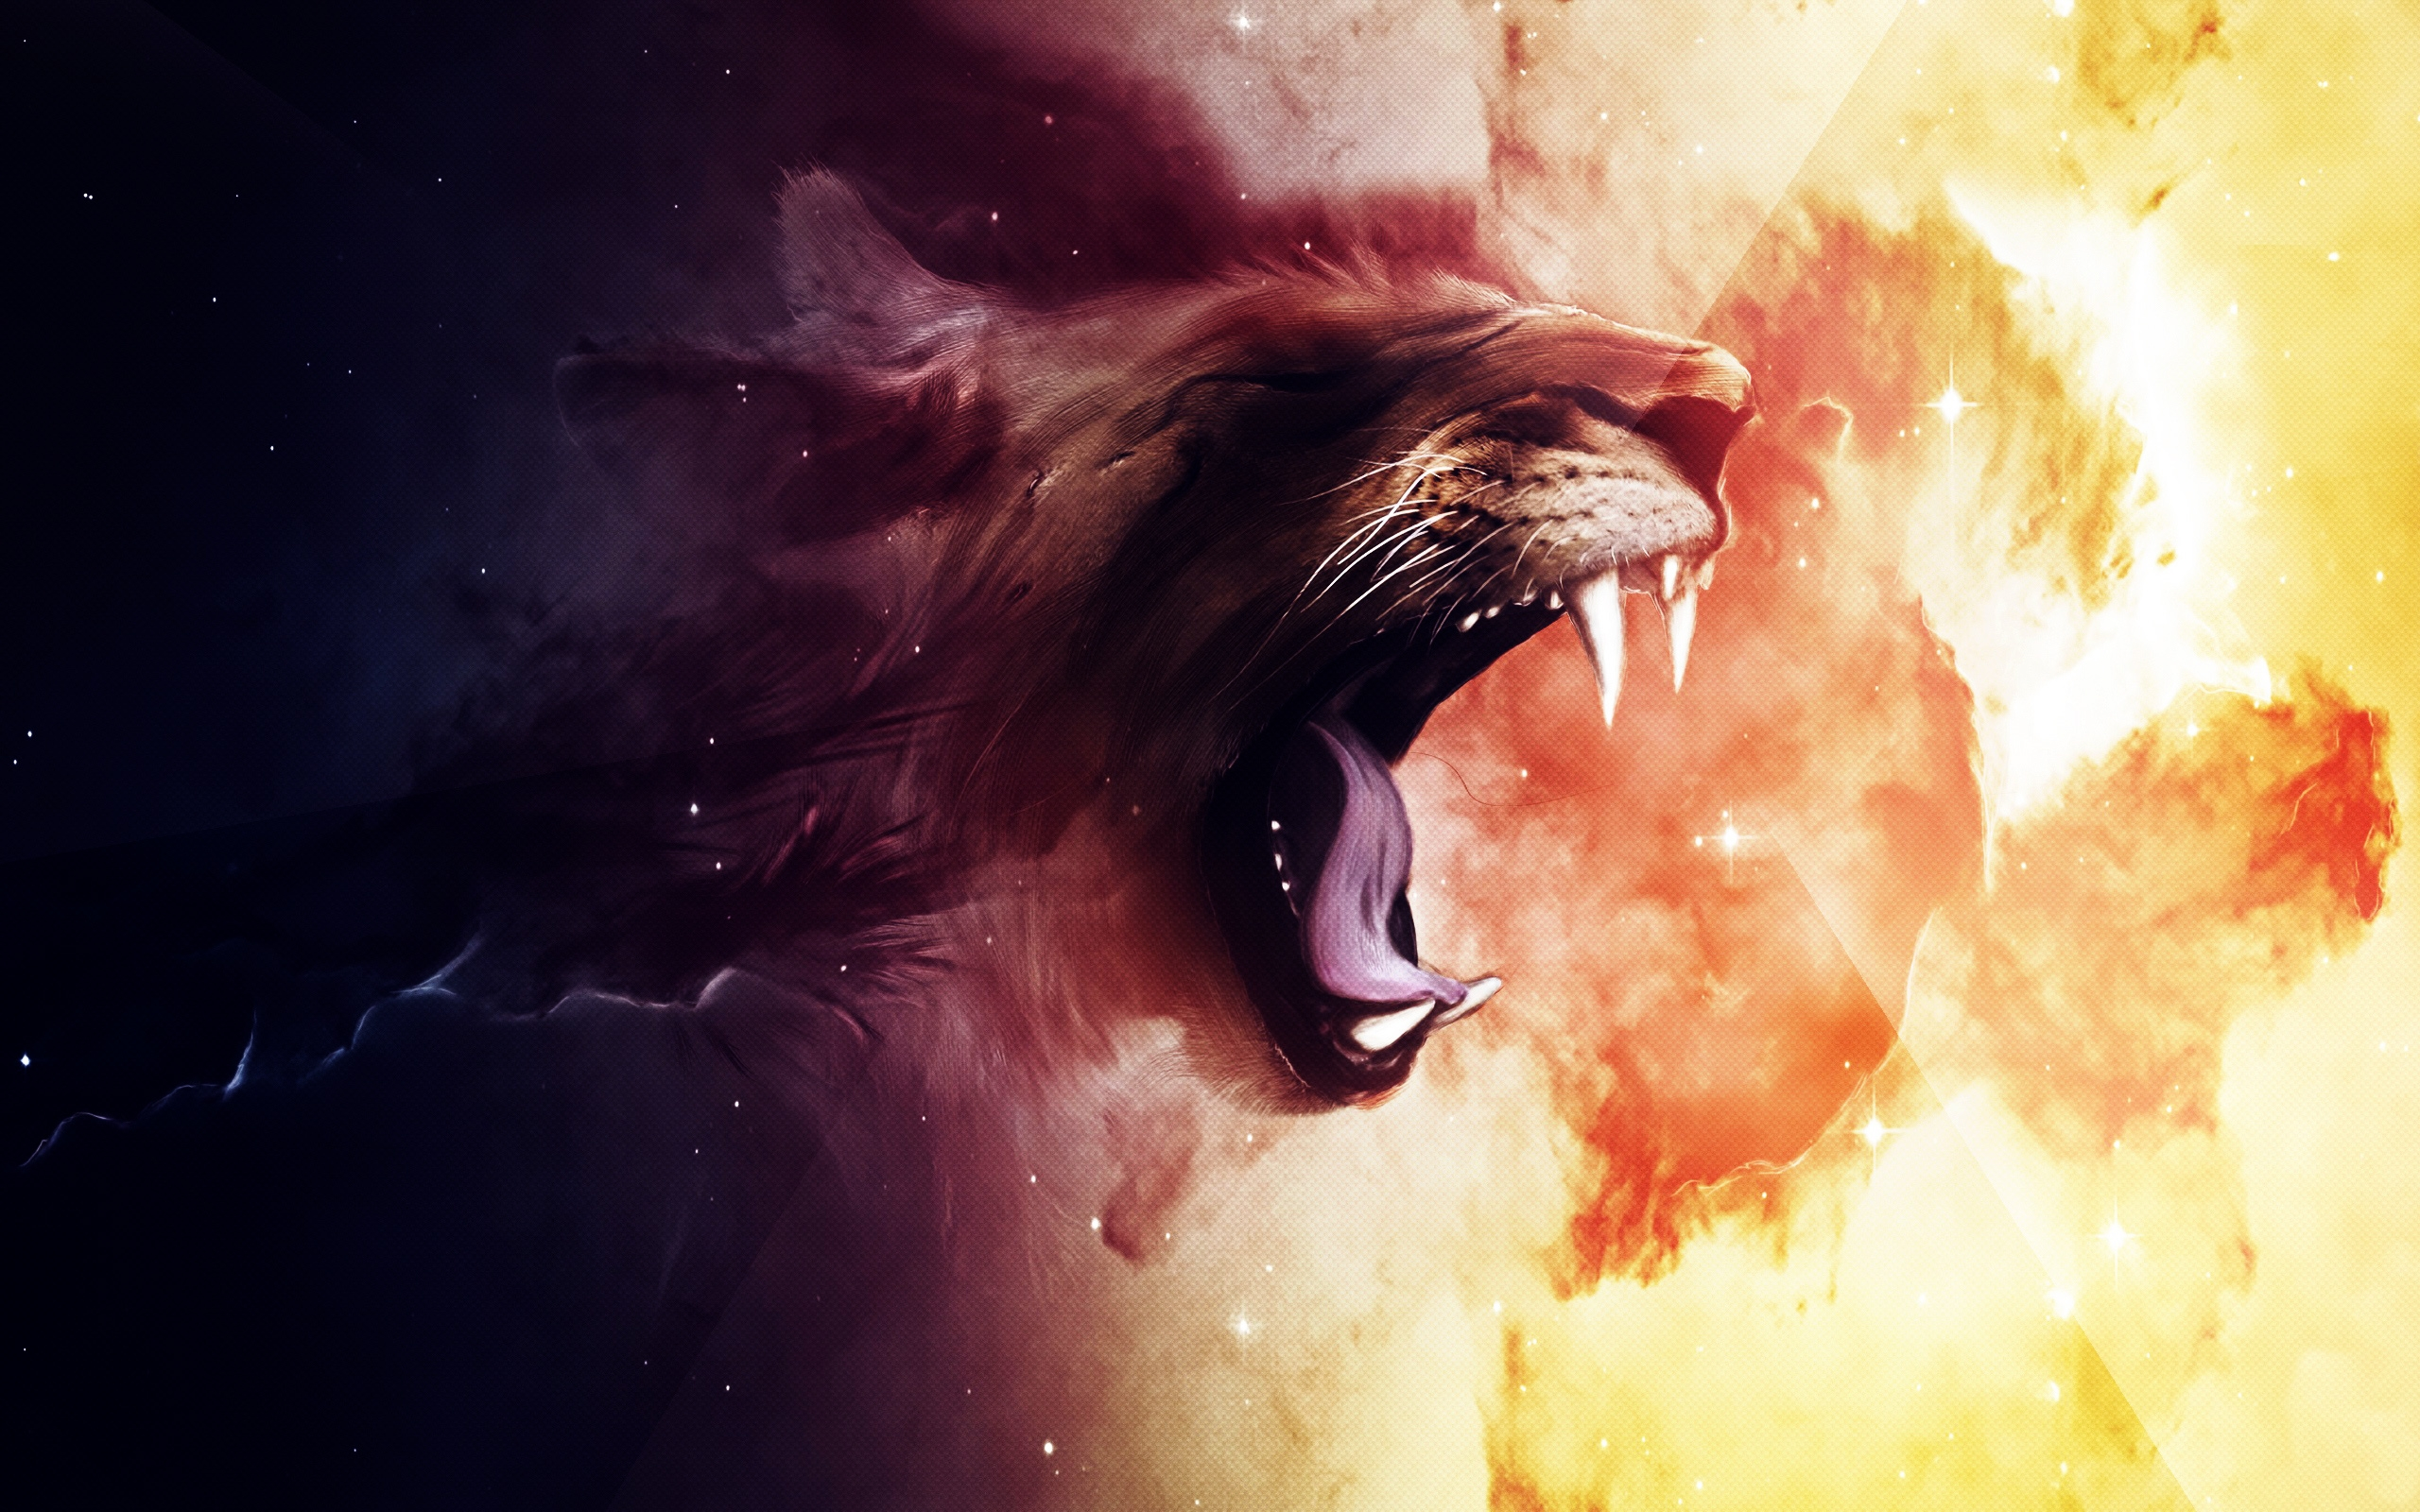 Roaring Lion Wallpapers HD Wallpapers 2560x1600